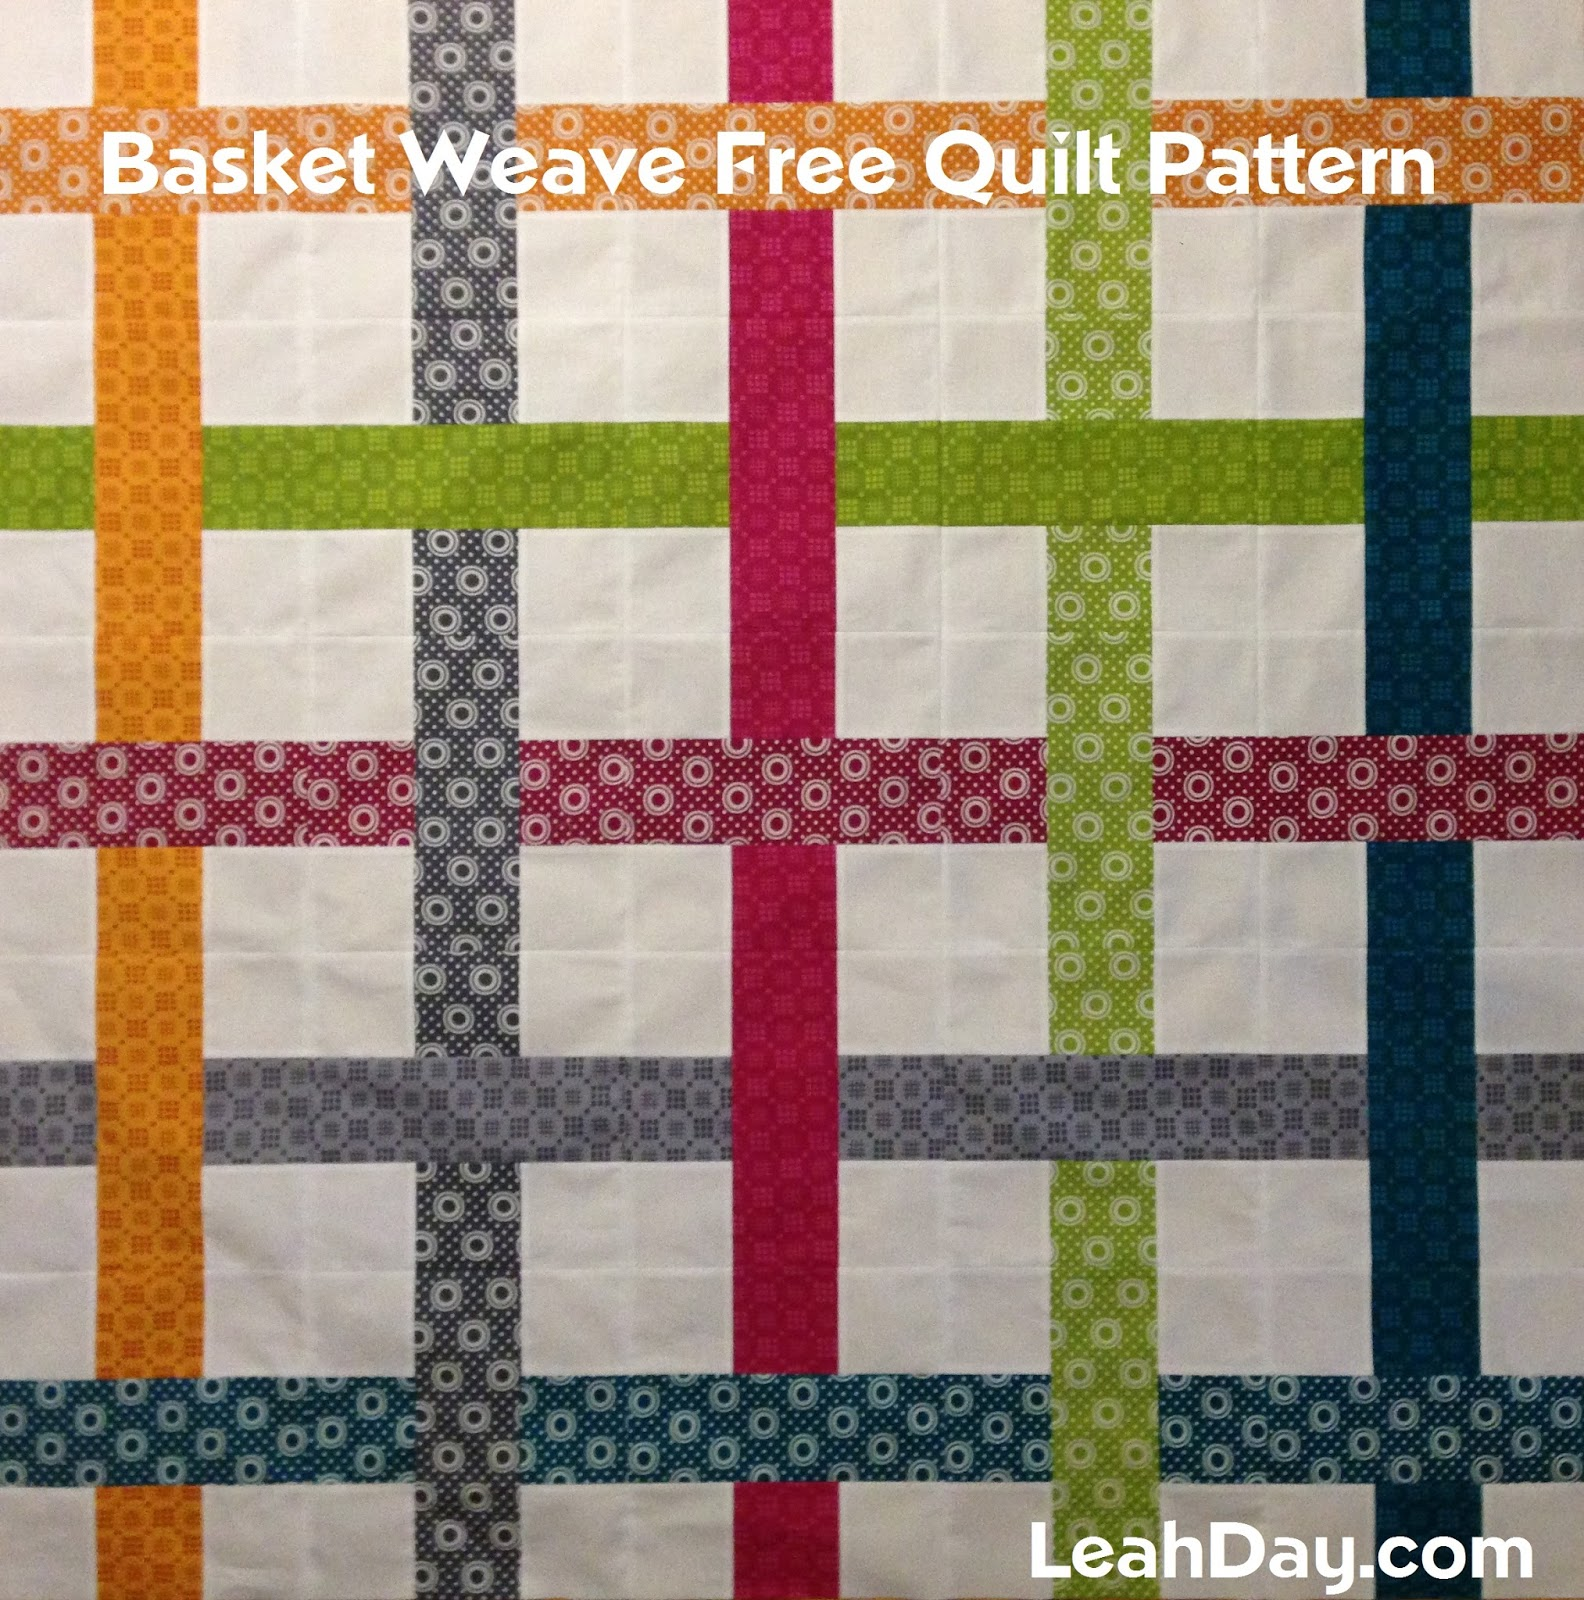 Free Basket Weaving Patterns Pictures : The free motion quilting project easy basket weave quilt